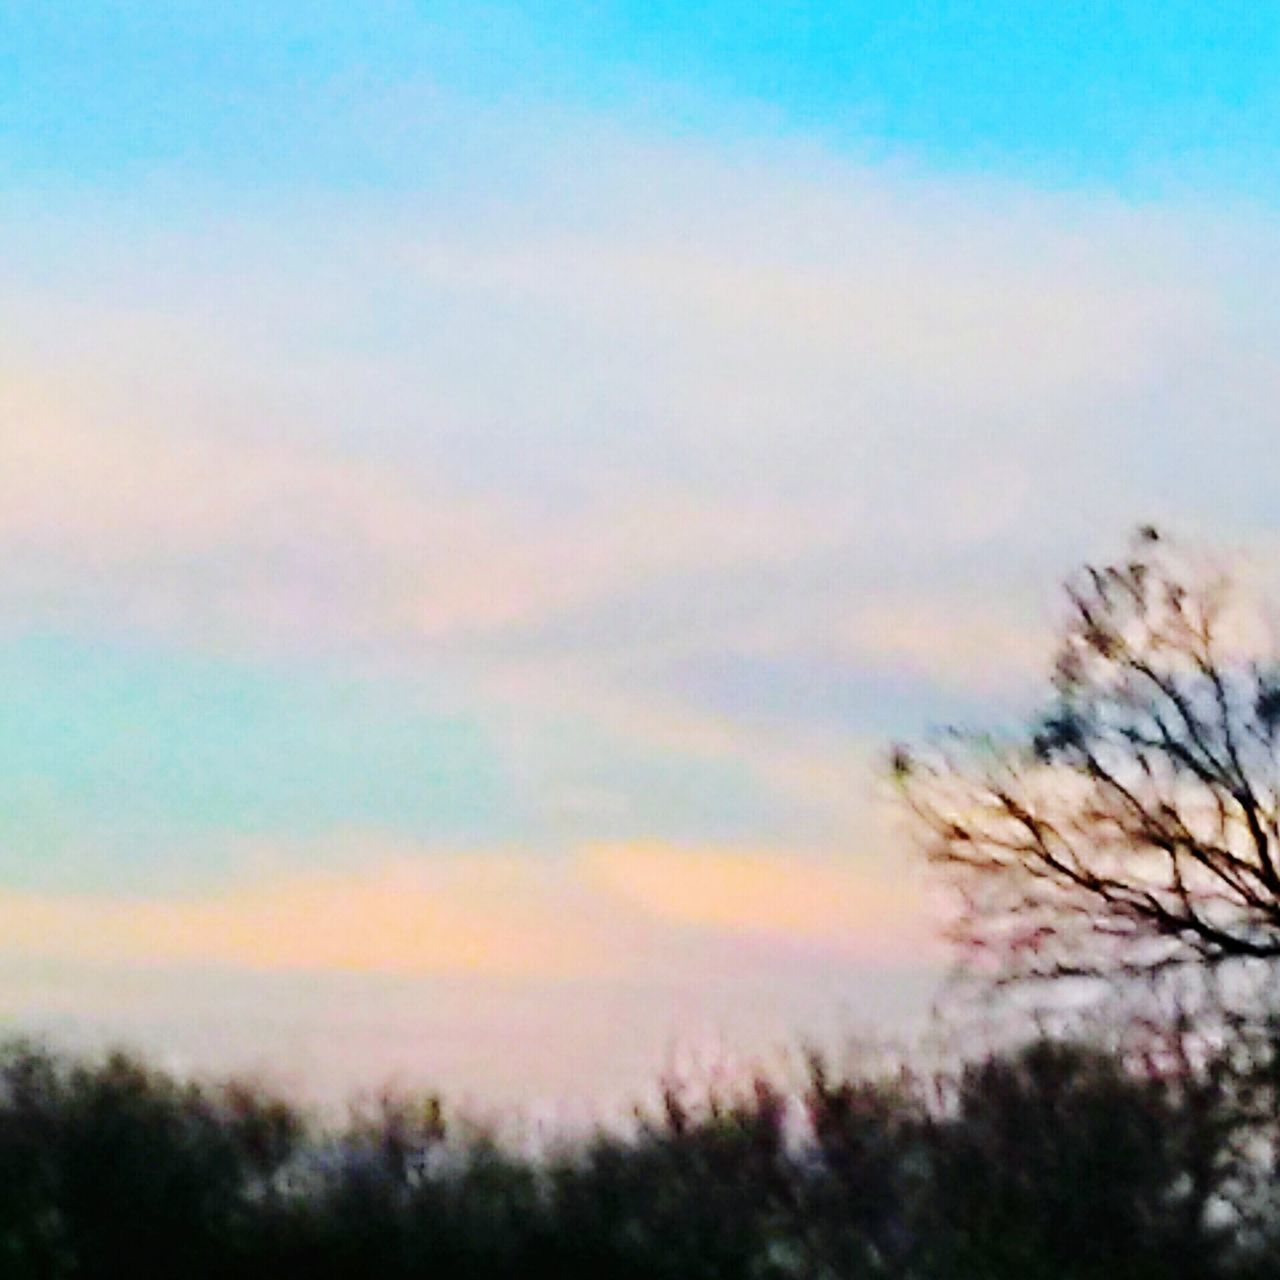 nature, beauty in nature, sky, tranquility, tranquil scene, no people, scenics, outdoors, sunset, low angle view, tree, growth, day, scenery, close-up